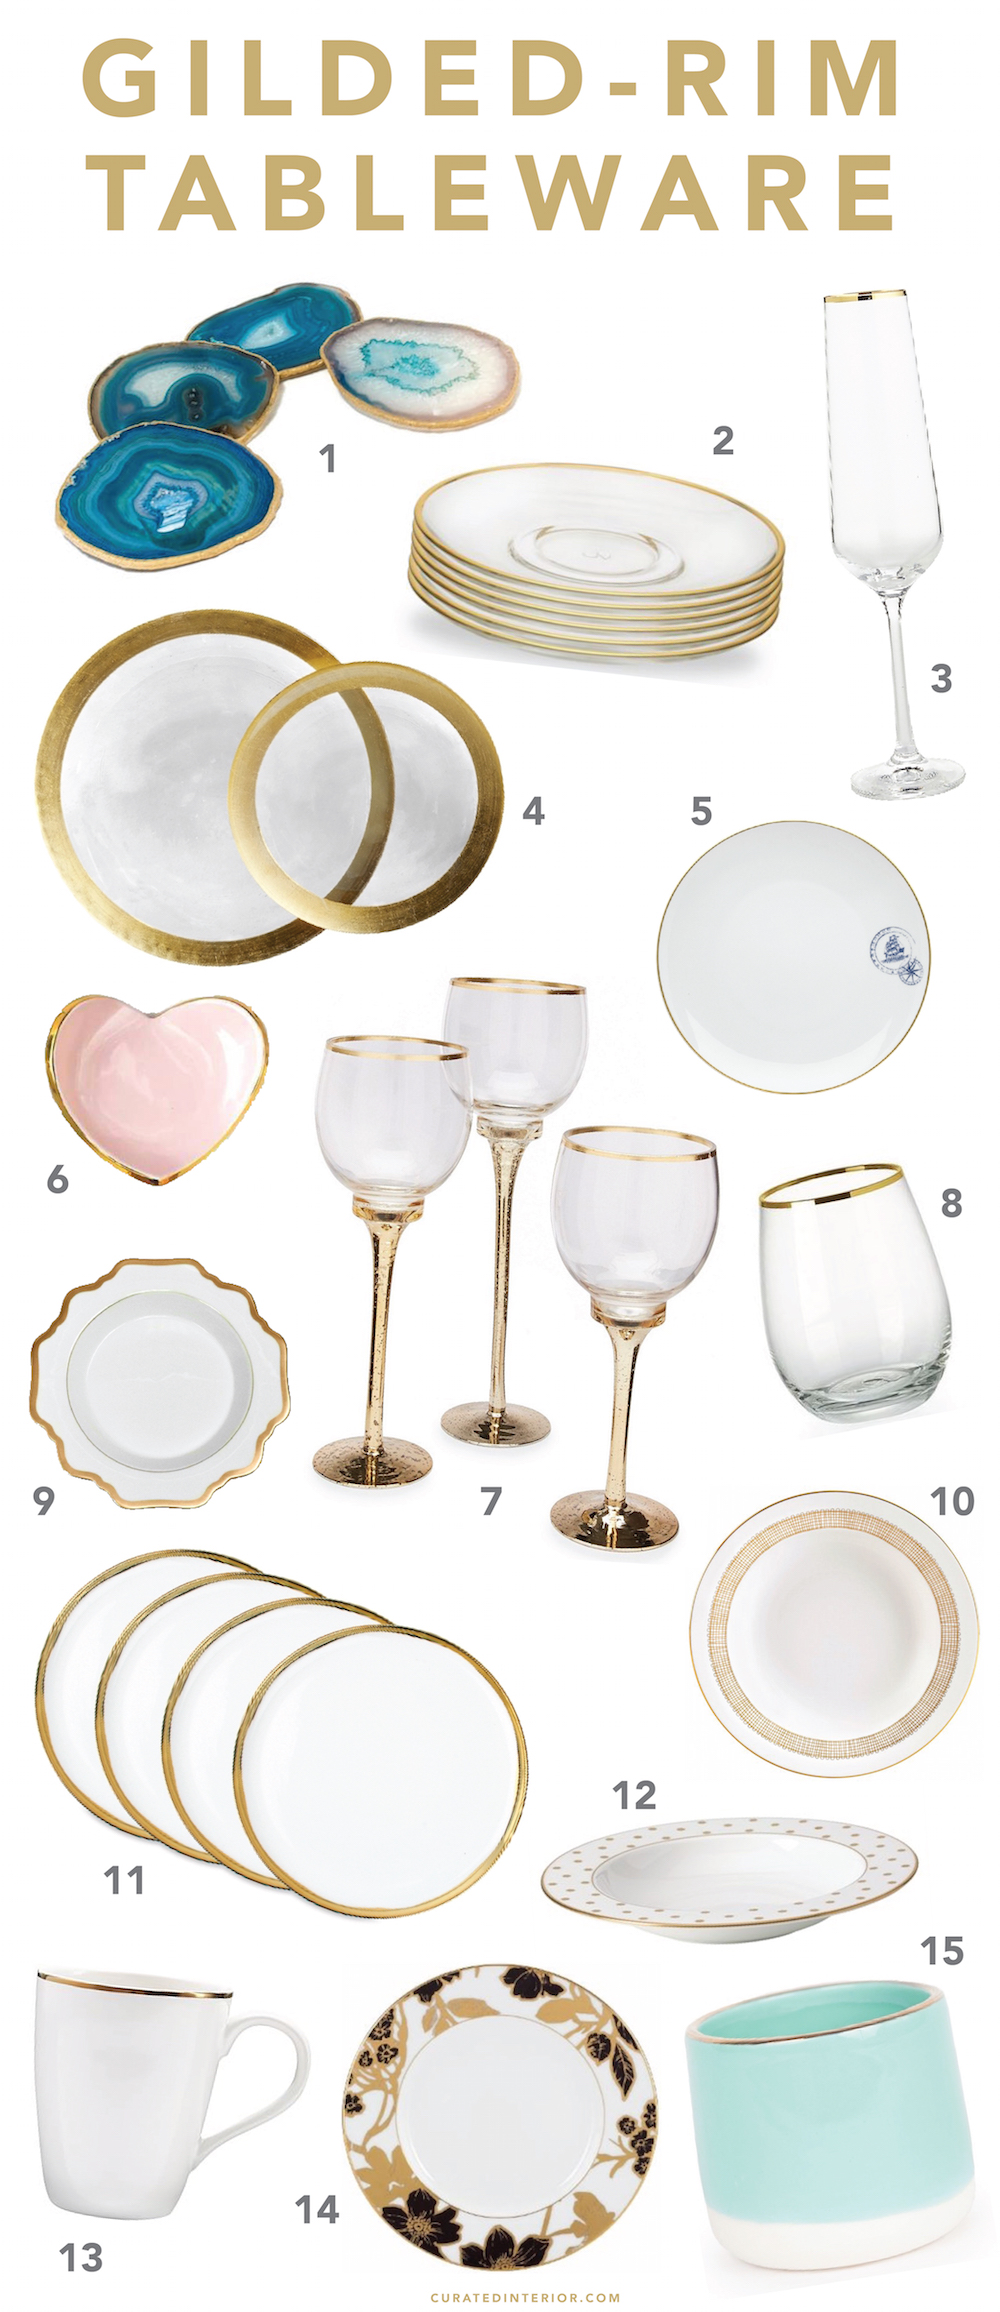 Gorgeous options for gilded-rim tableware!